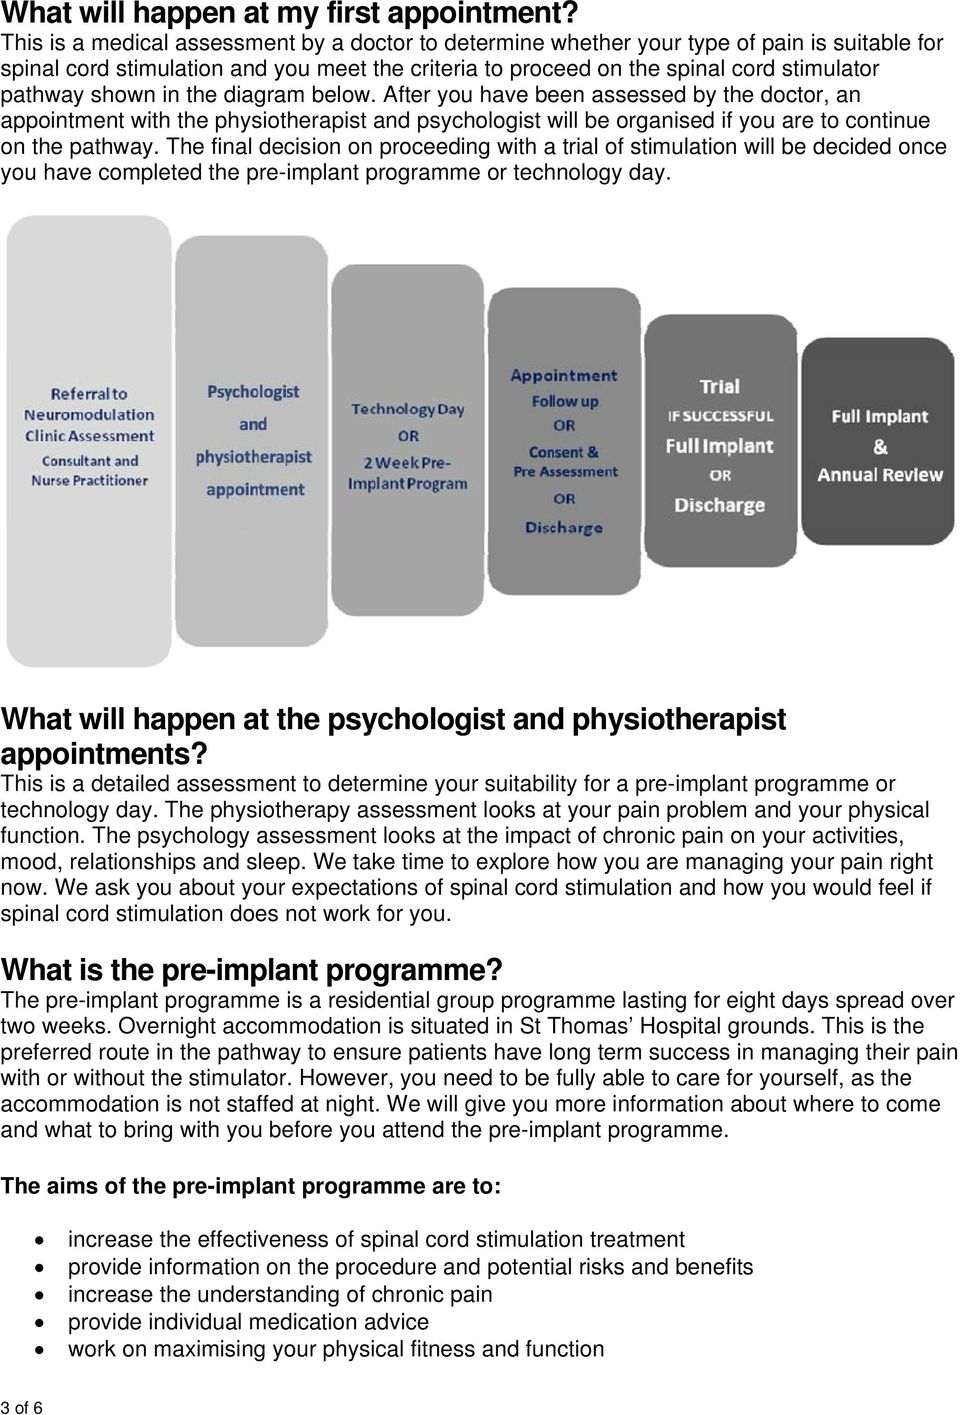 shown in the diagram below. After you have been assessed by the doctor, an appointment with the physiotherapist and psychologist will be organised if you are to continue on the pathway.